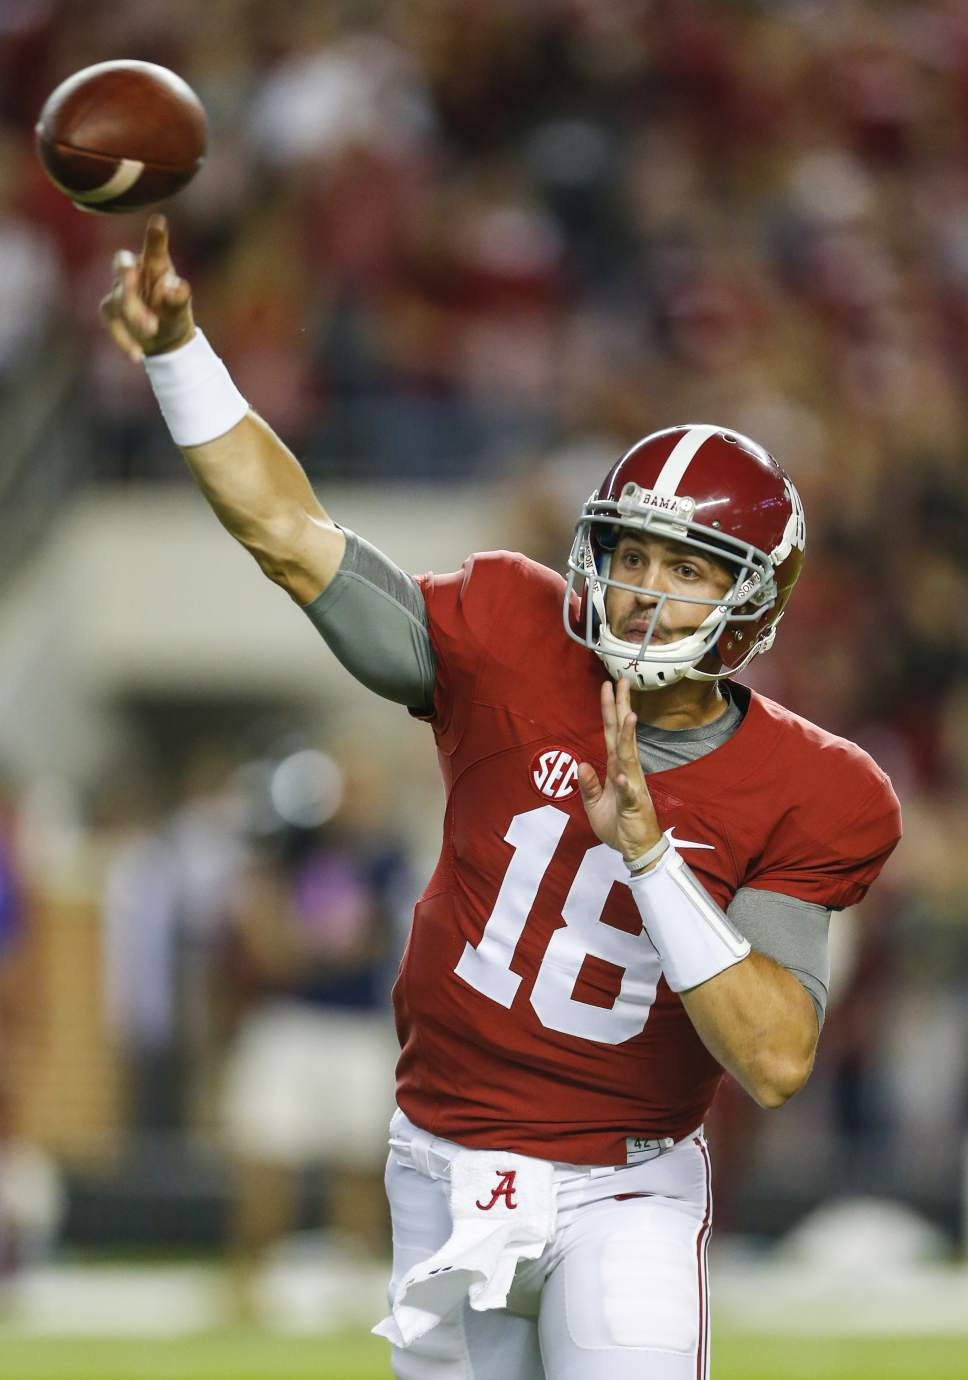 Alabama quarterback Cooper Bateman (18) throws a pass  against Kentucky during the second half of an NCAA college football game, Saturday, Oct. 1, 2016, in Tuscaloosa, Ala. (AP Photo/Butch Dill)